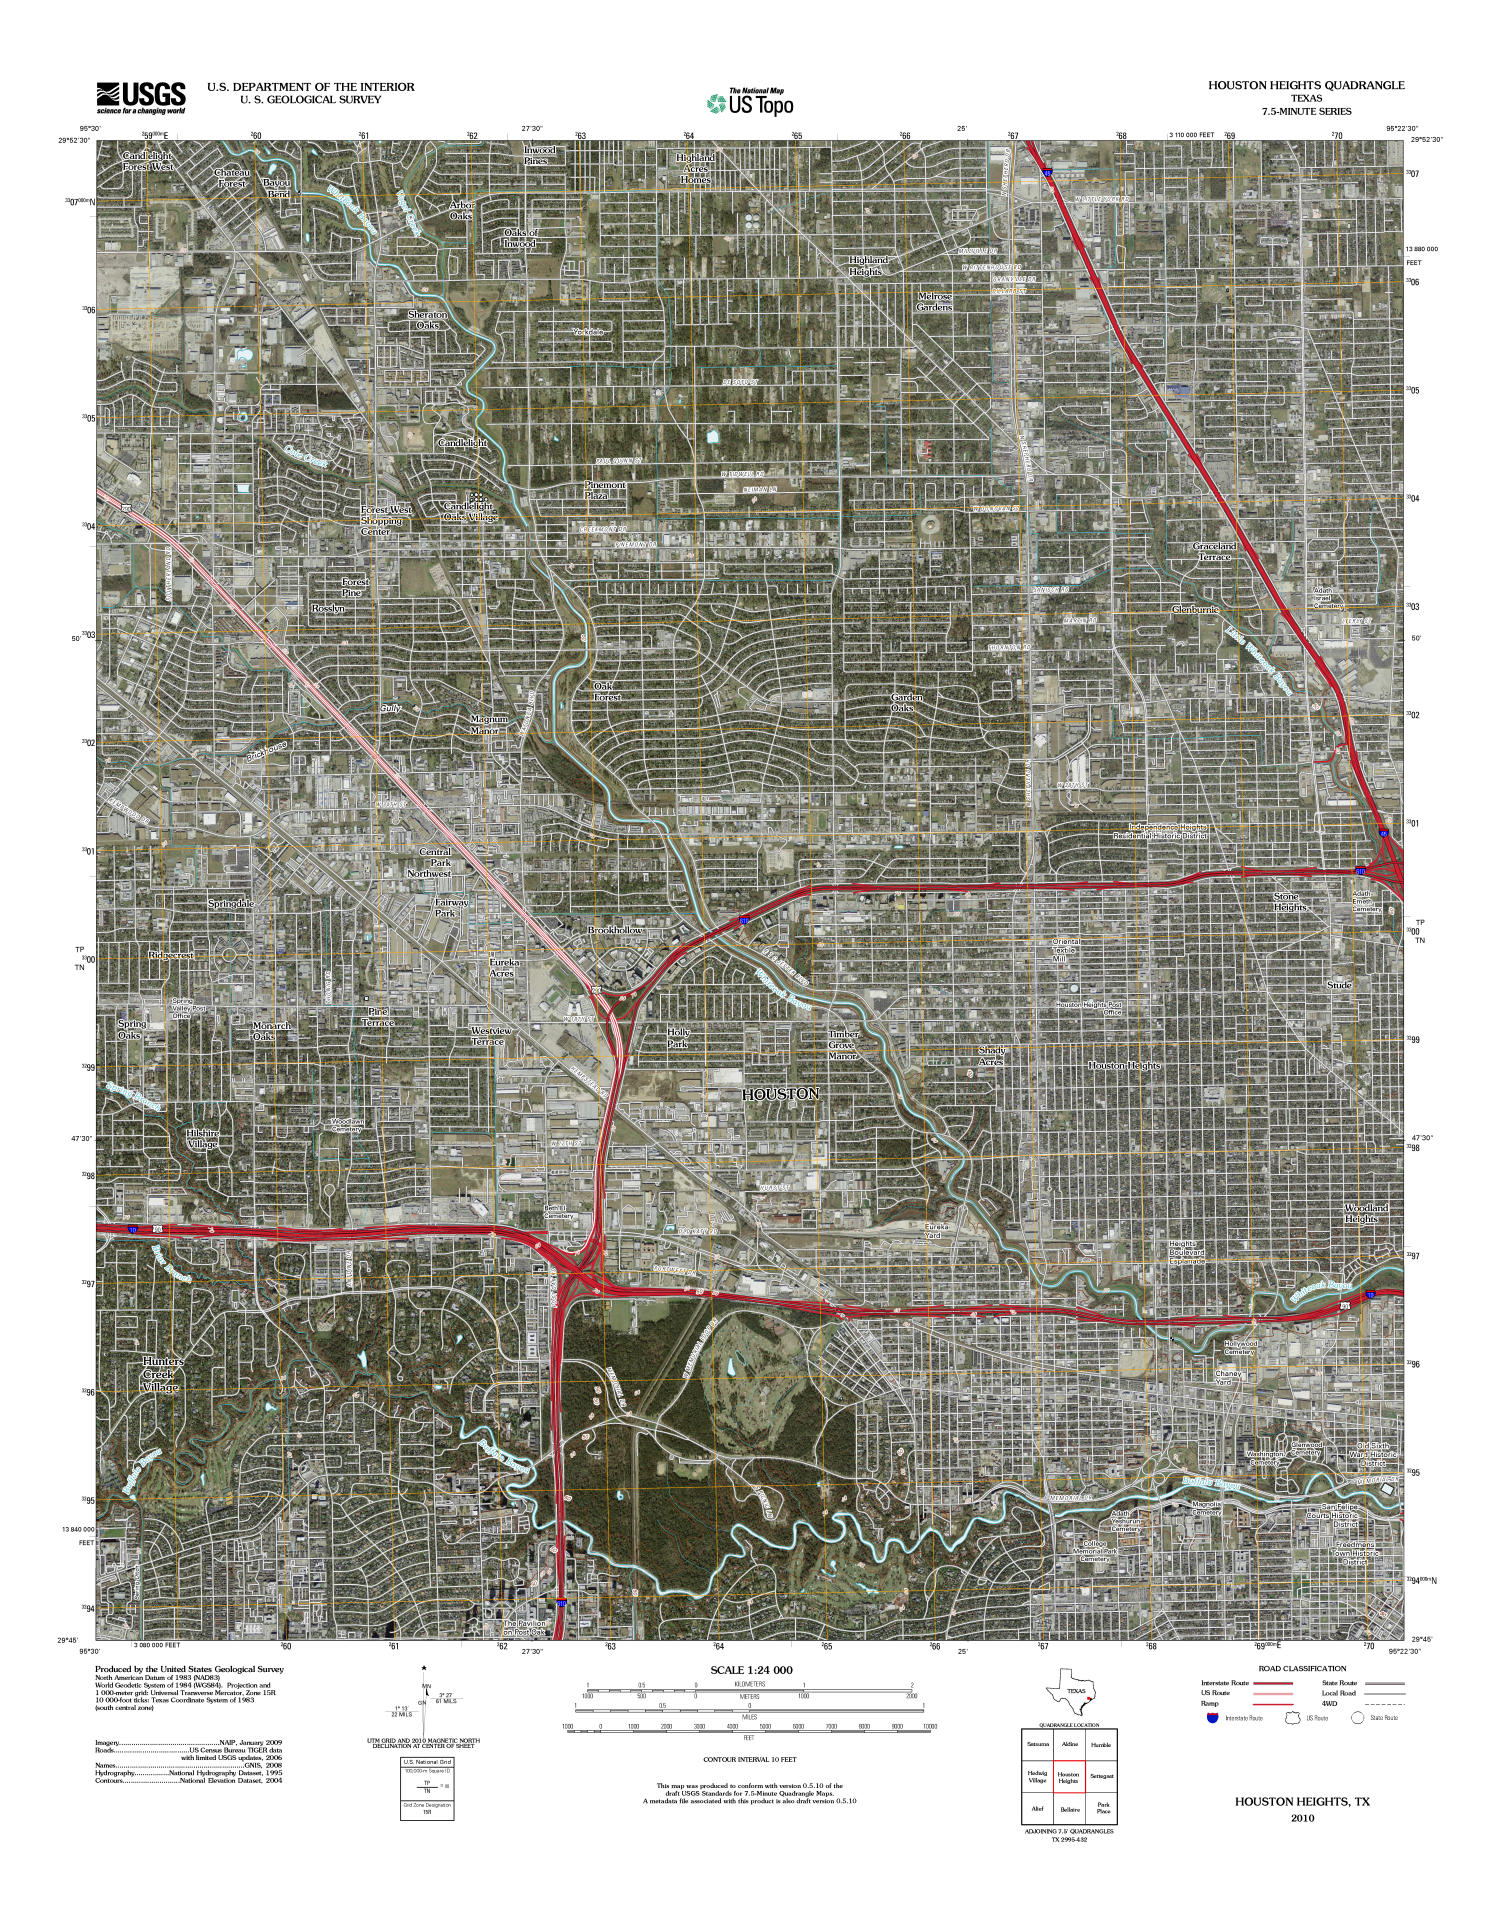 Houston Heights Quadrangle, Satellite image topographic map of a portion of Texas from the United States Geological Survey (USGS) project. The map includes towns, historic or notable sites, bodies of water, and other geologic features. Scale 1:24,000,